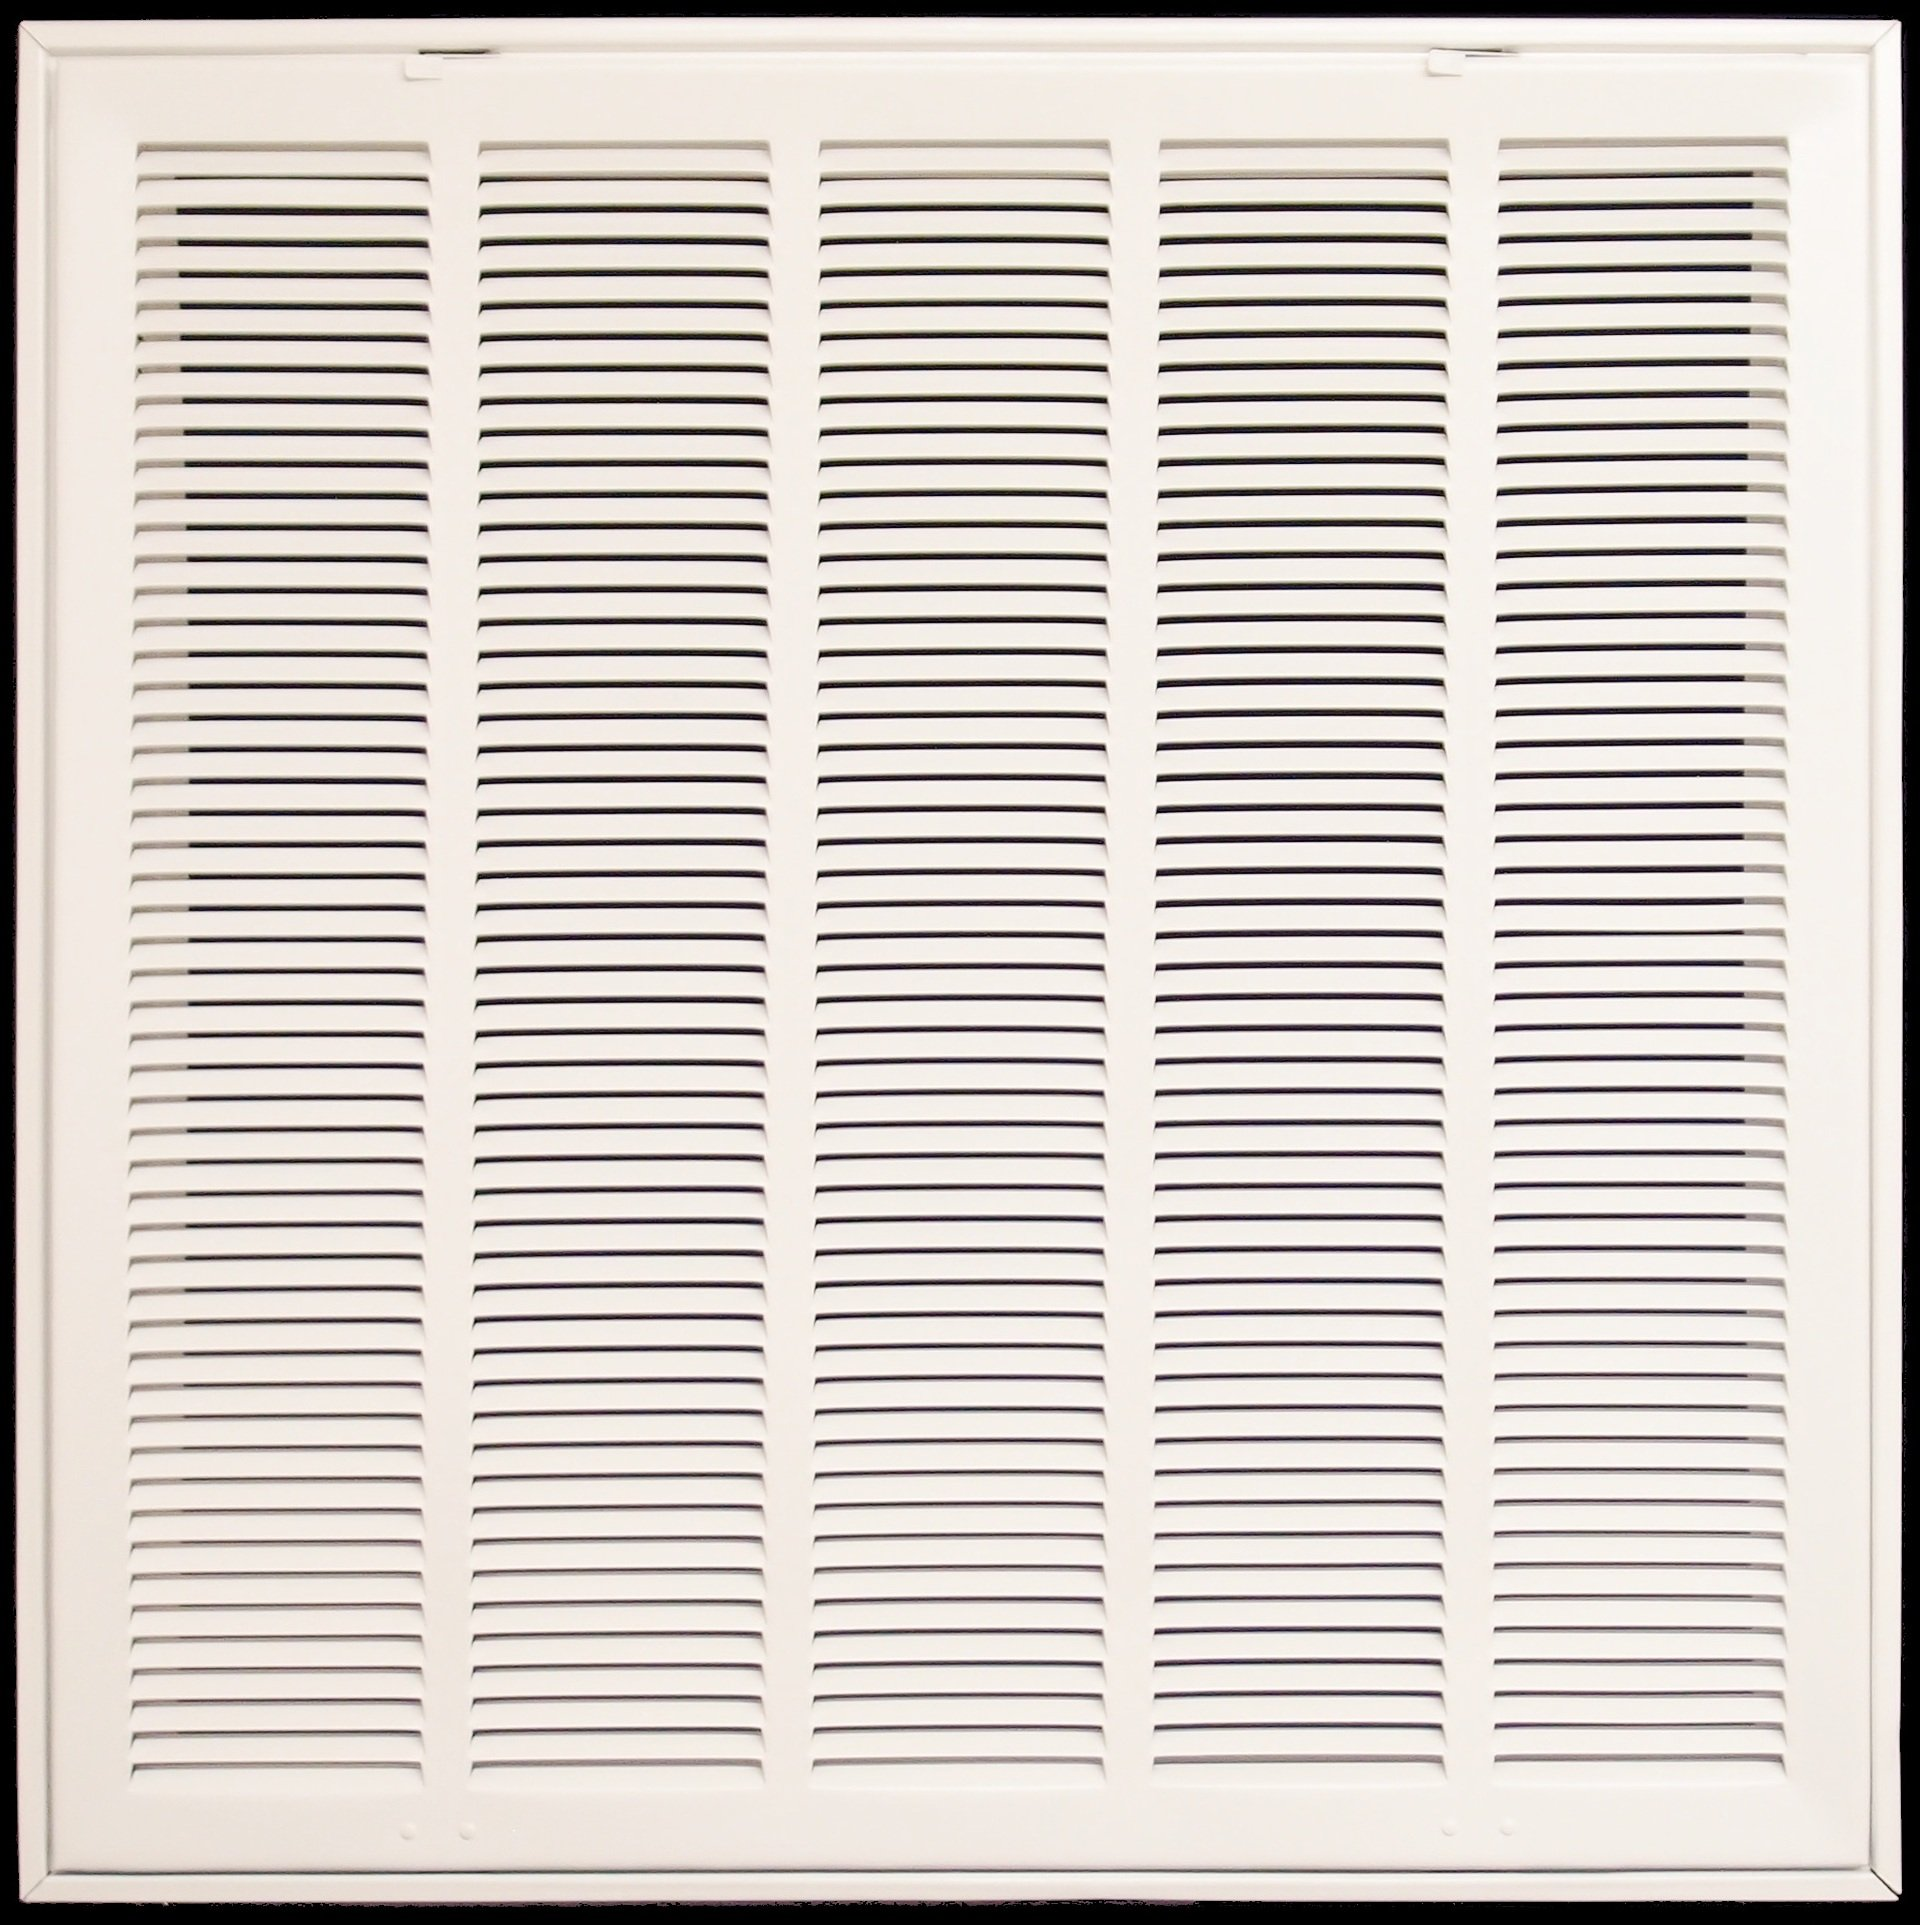 25'' X 20 Steel Return Air Filter Grille for 1'' Filter - Fixed Hinged - ceiling Recommended - HVAC DUCT COVER - Flat Stamped Face - White [Outer Dimensions: 27.5''w X 22.5''h]